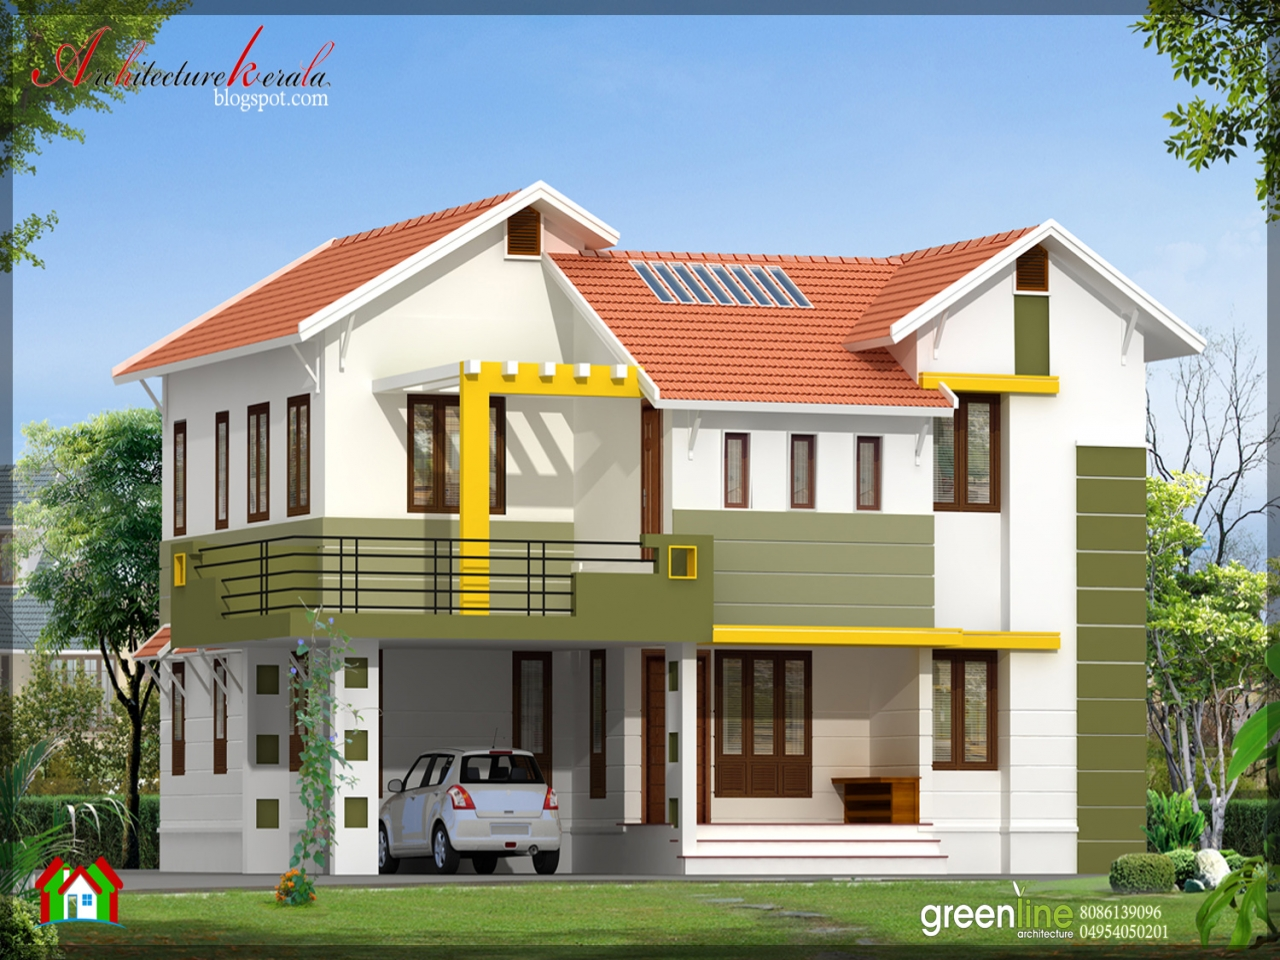 Simple Modern House Designs Simple House Design In India Home Designs Indian Style